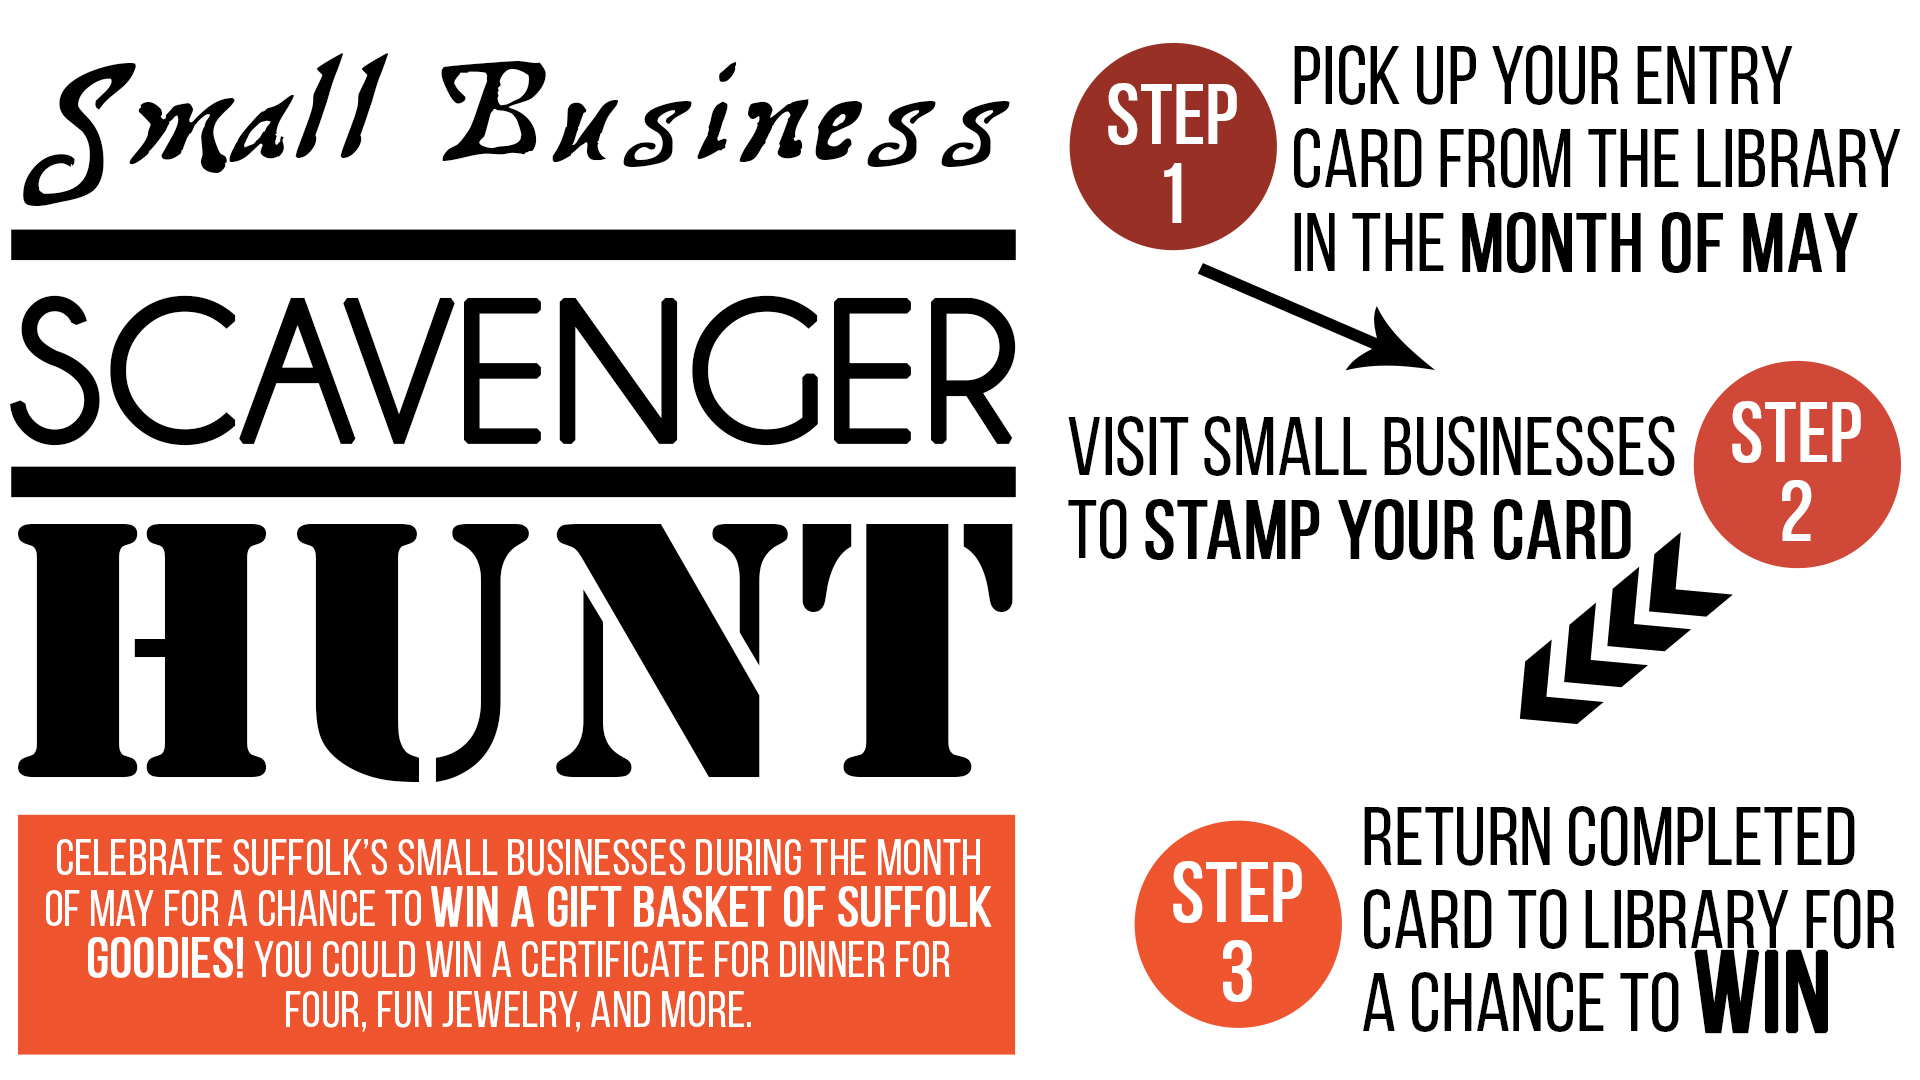 Small Business Scavenger Hunt